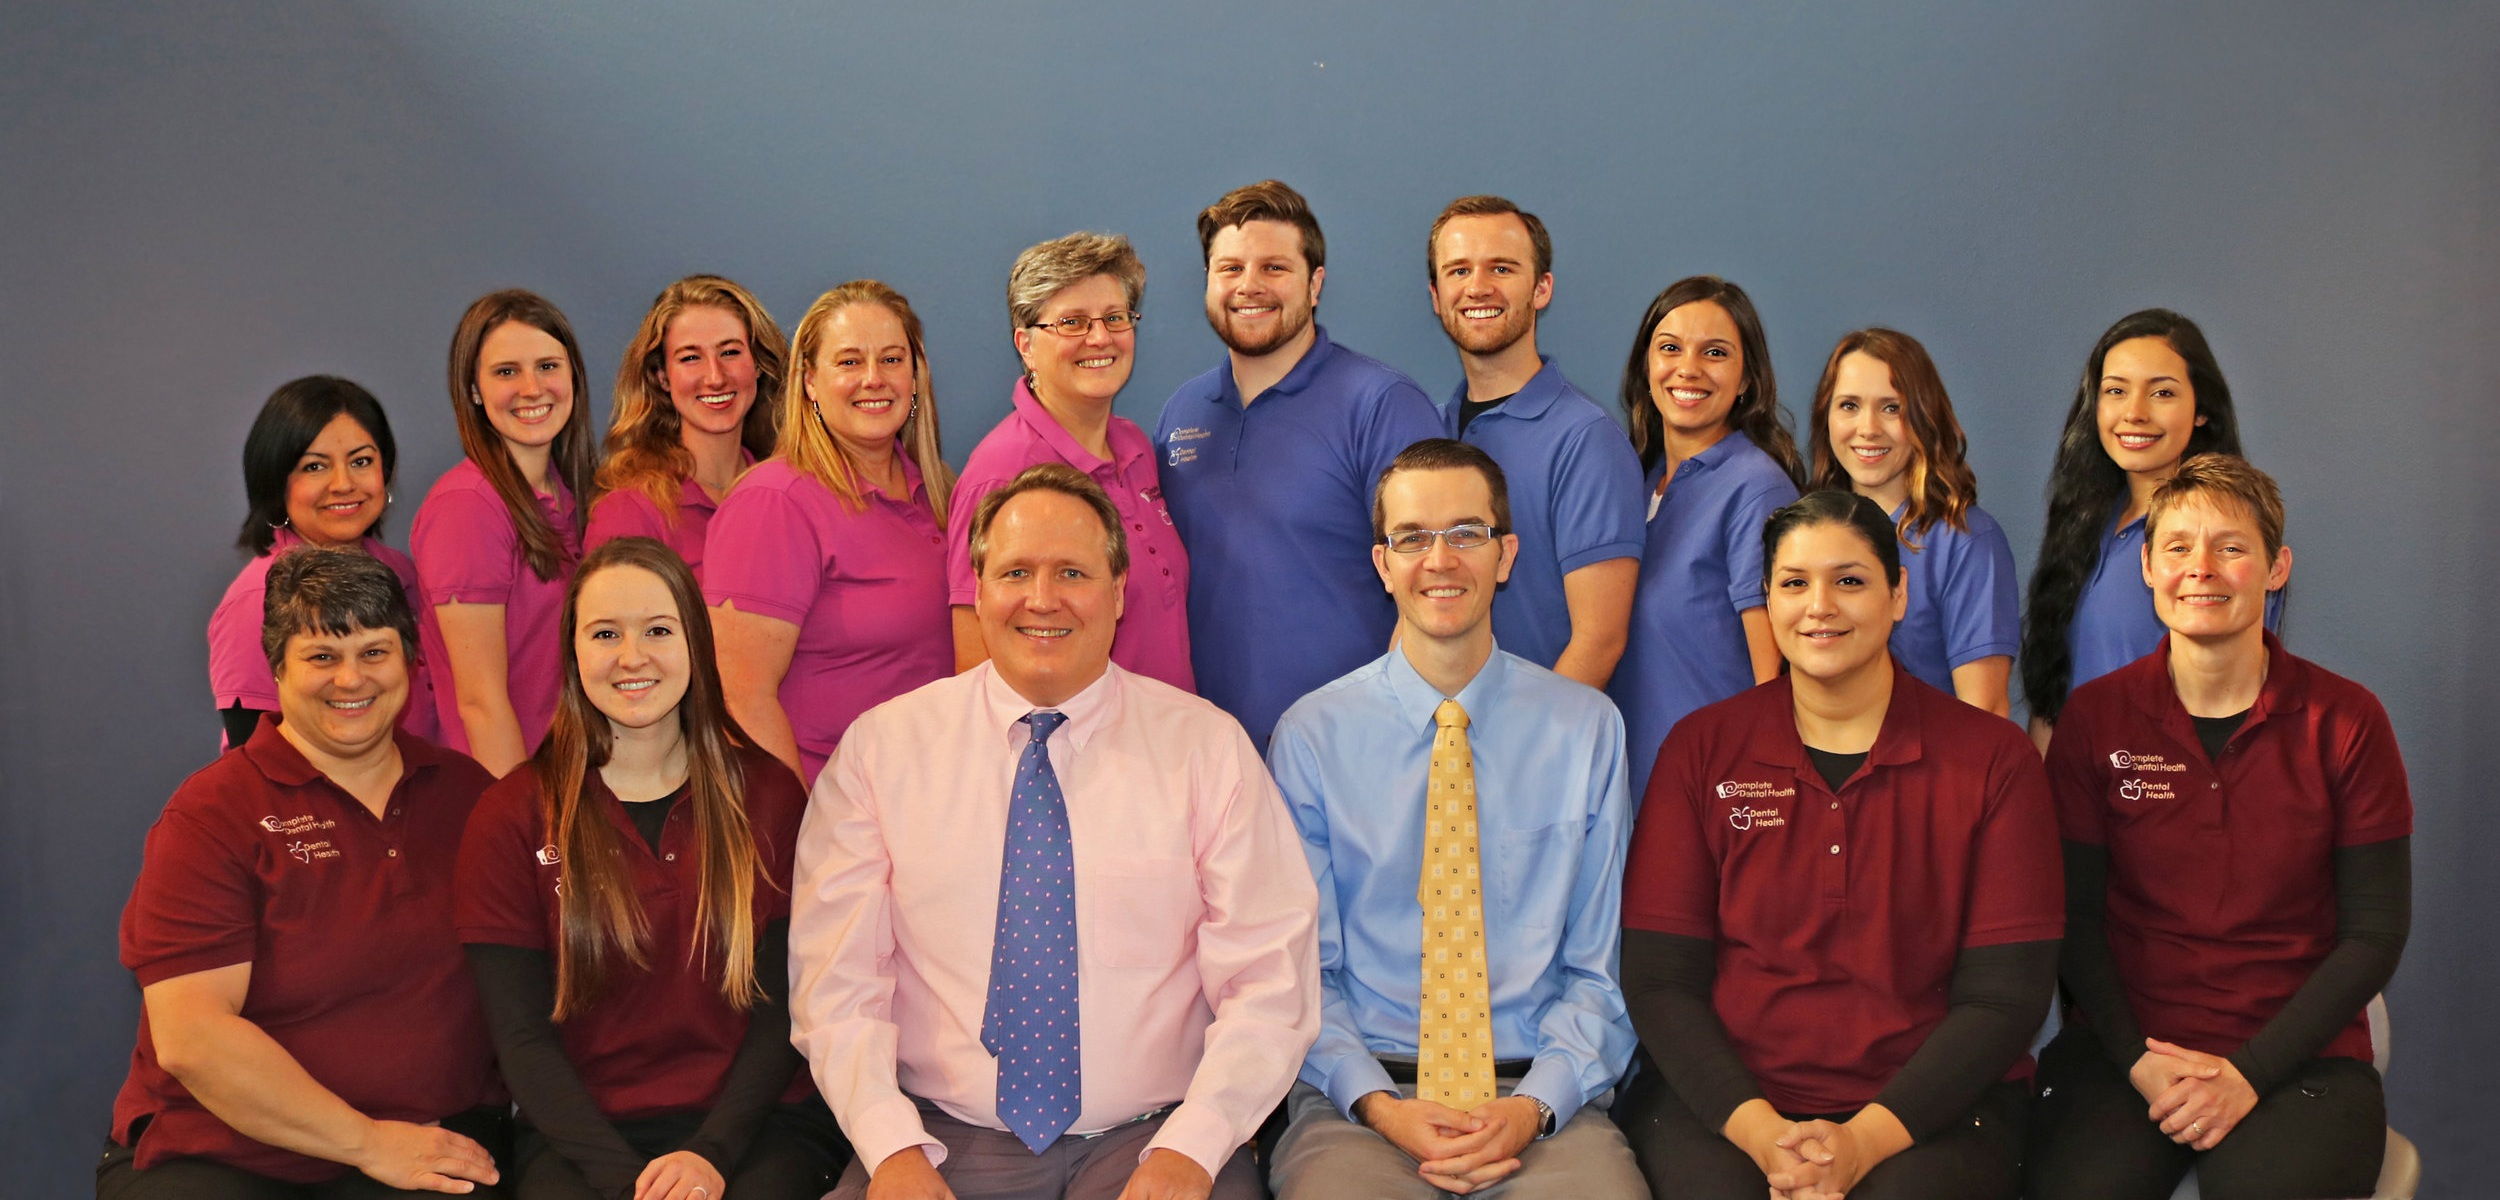 Complete Dental Health Team Photo